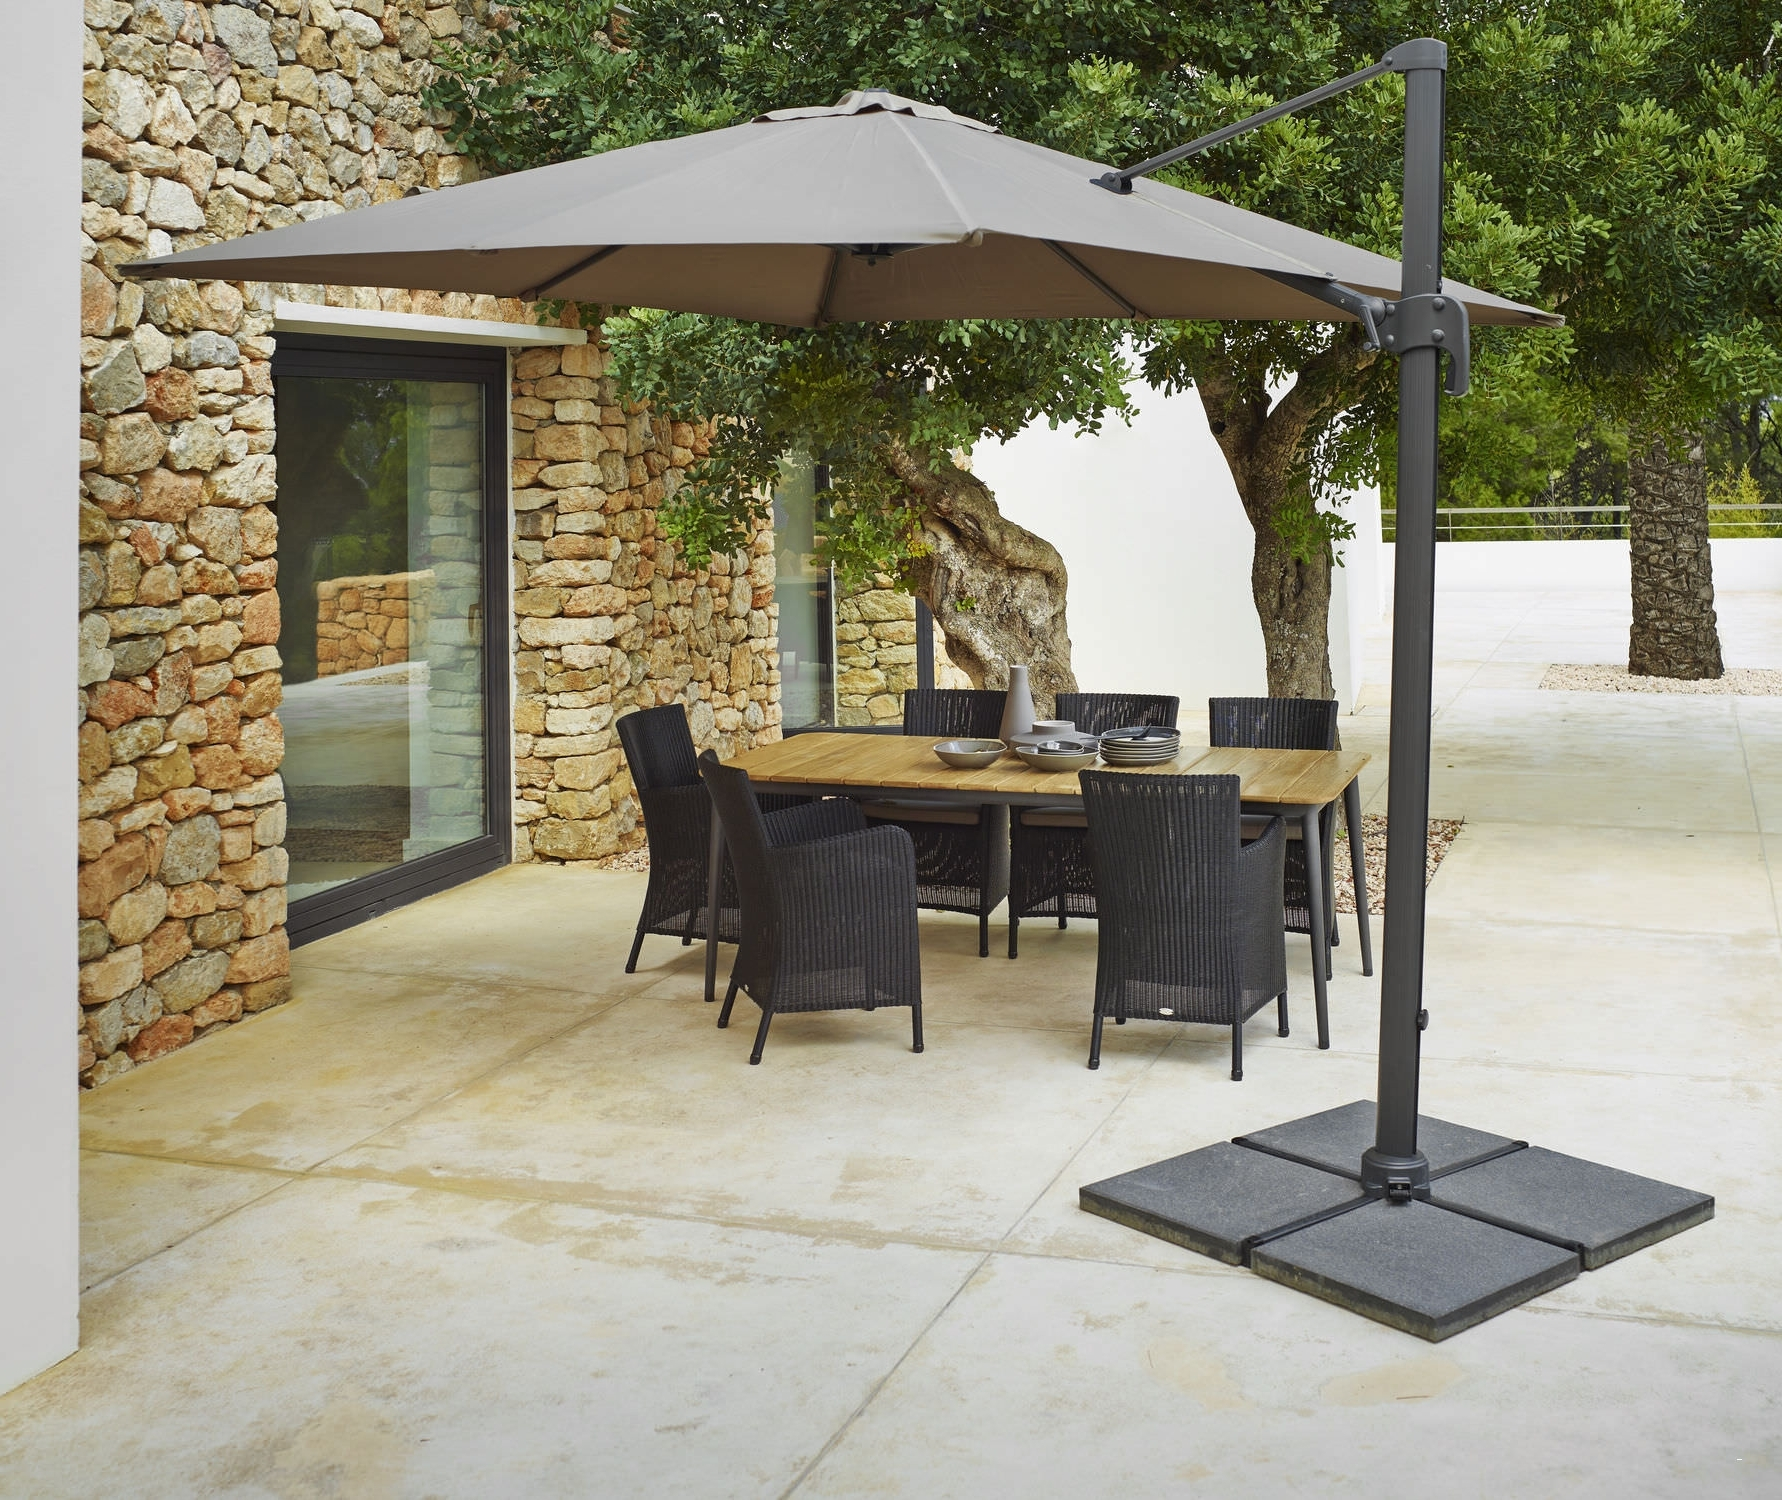 Impressive Offset Rectangular Patio Umbrella Large Umbrellas For In Most Recently Released Offset Rectangular Patio Umbrellas (View 5 of 20)